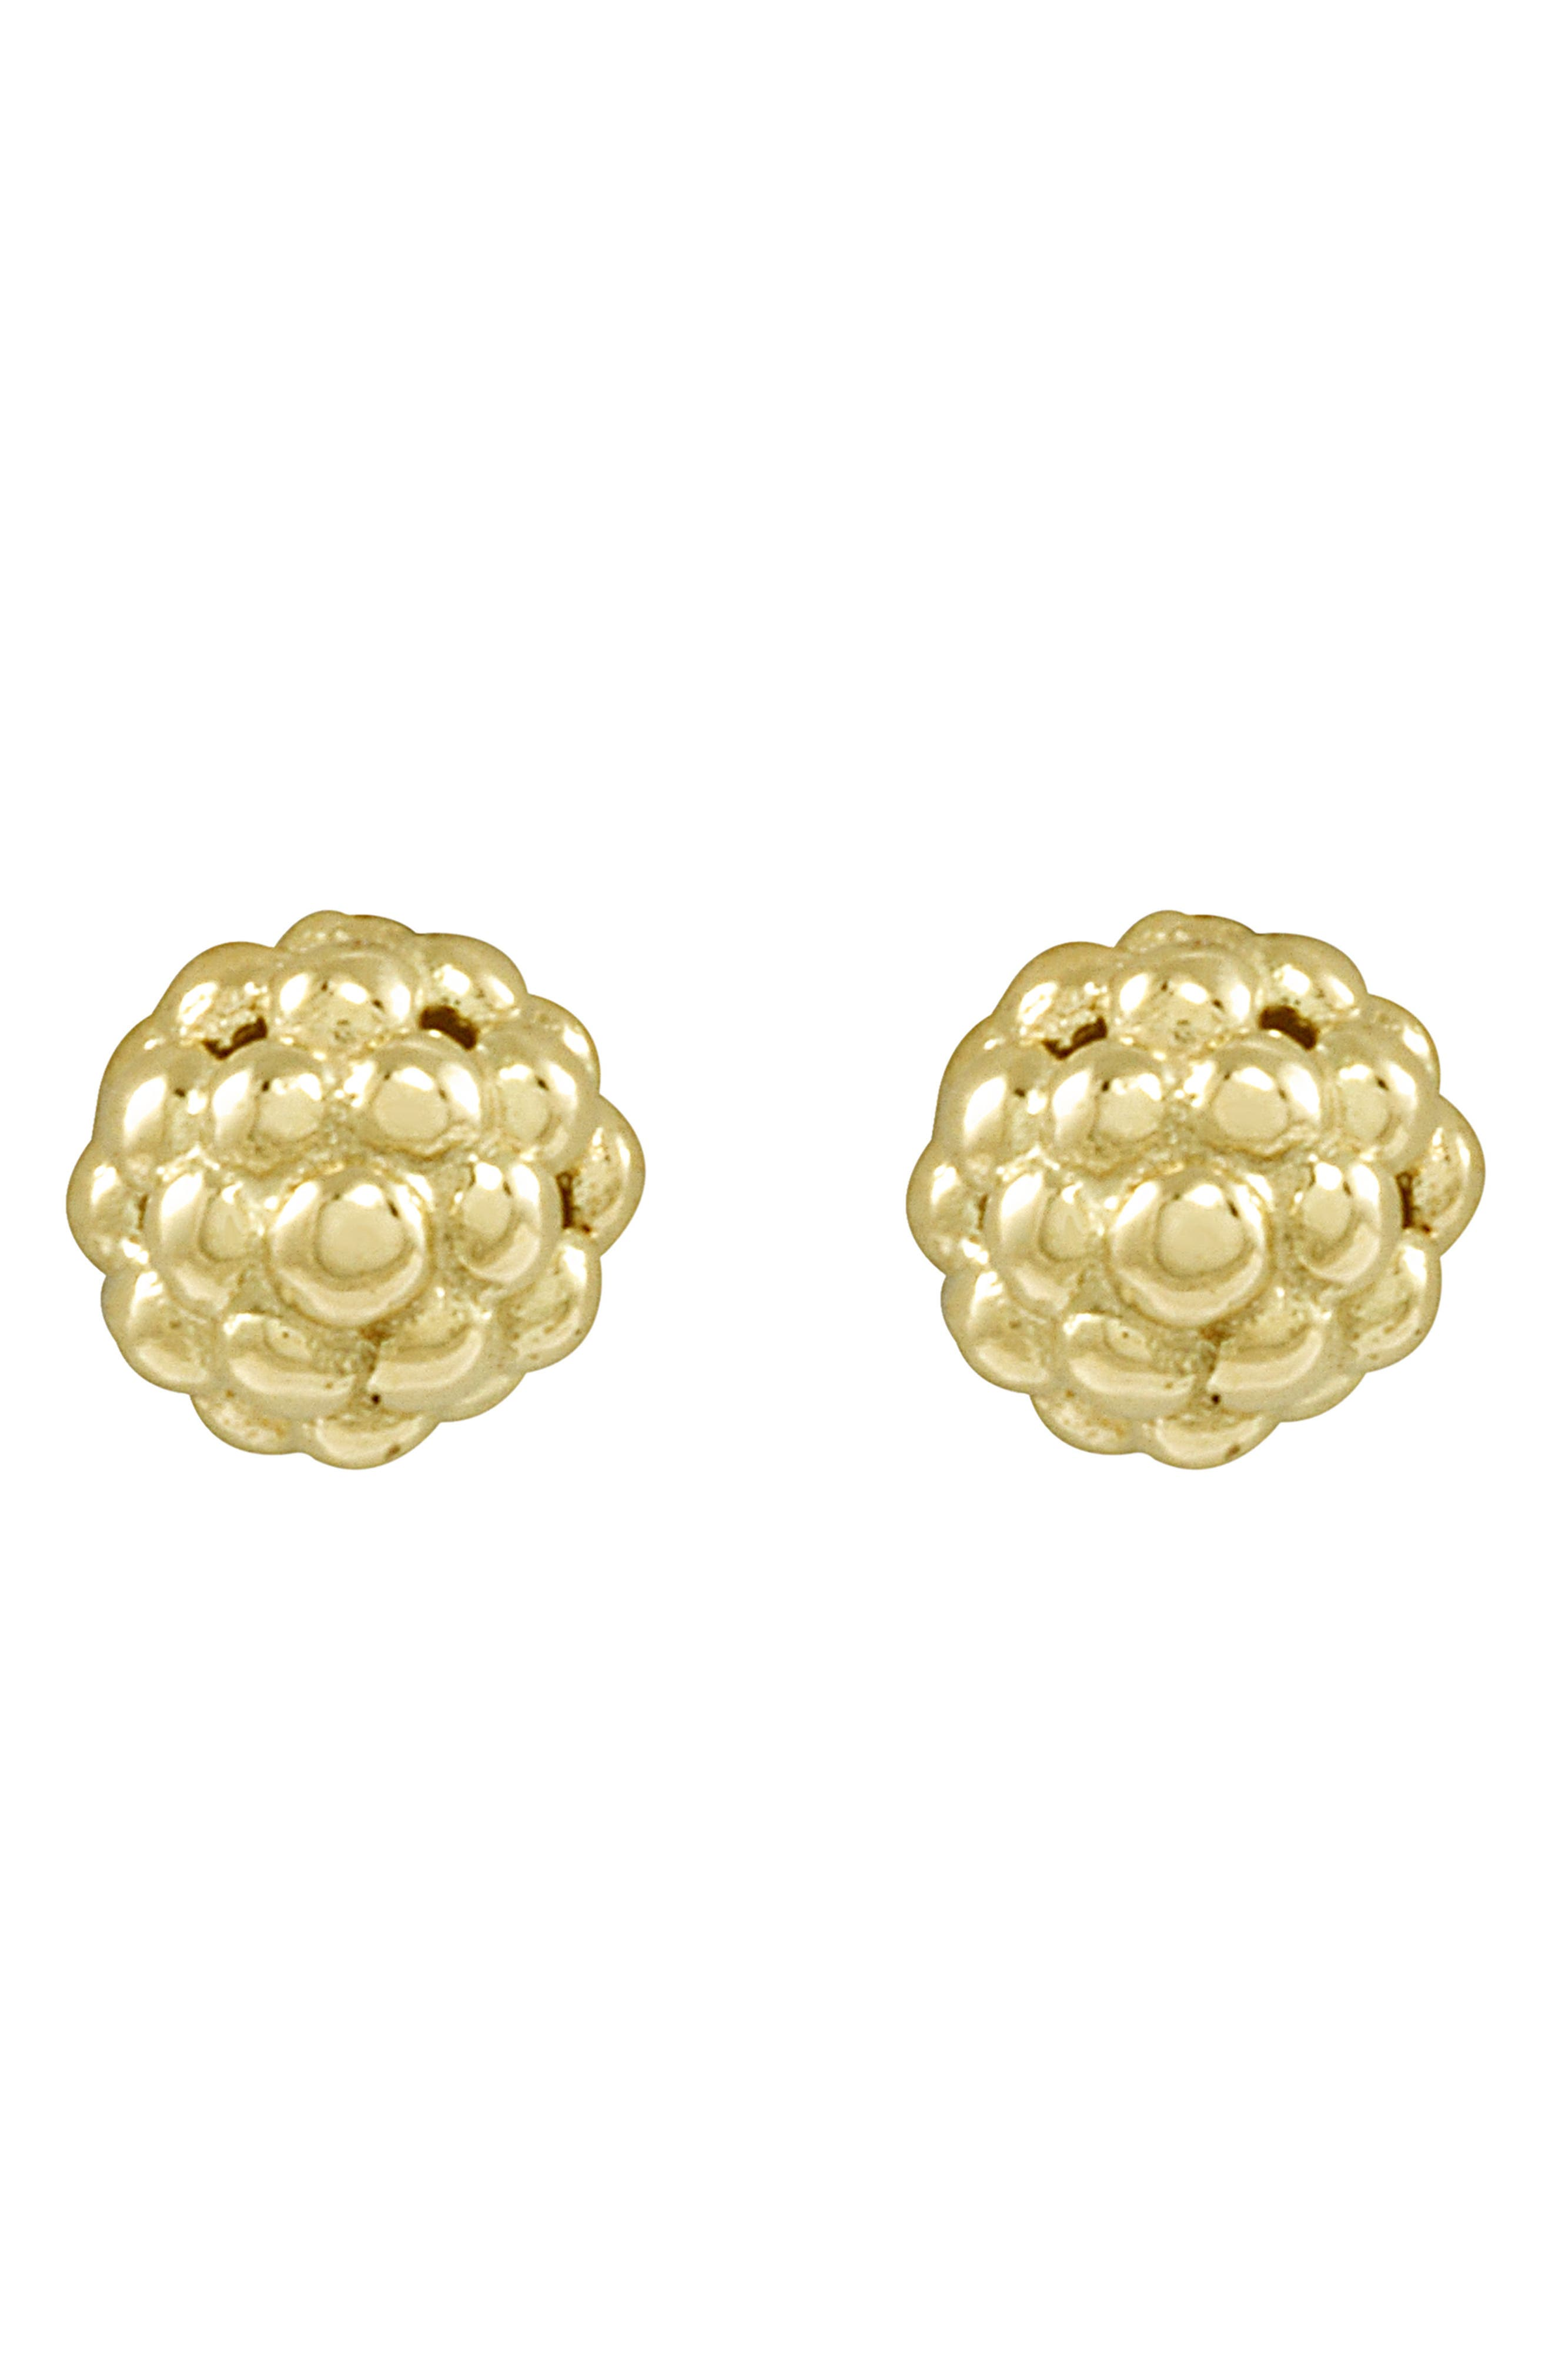 'Caviar Icon' Stud Earrings,                             Alternate thumbnail 5, color,                             GOLD